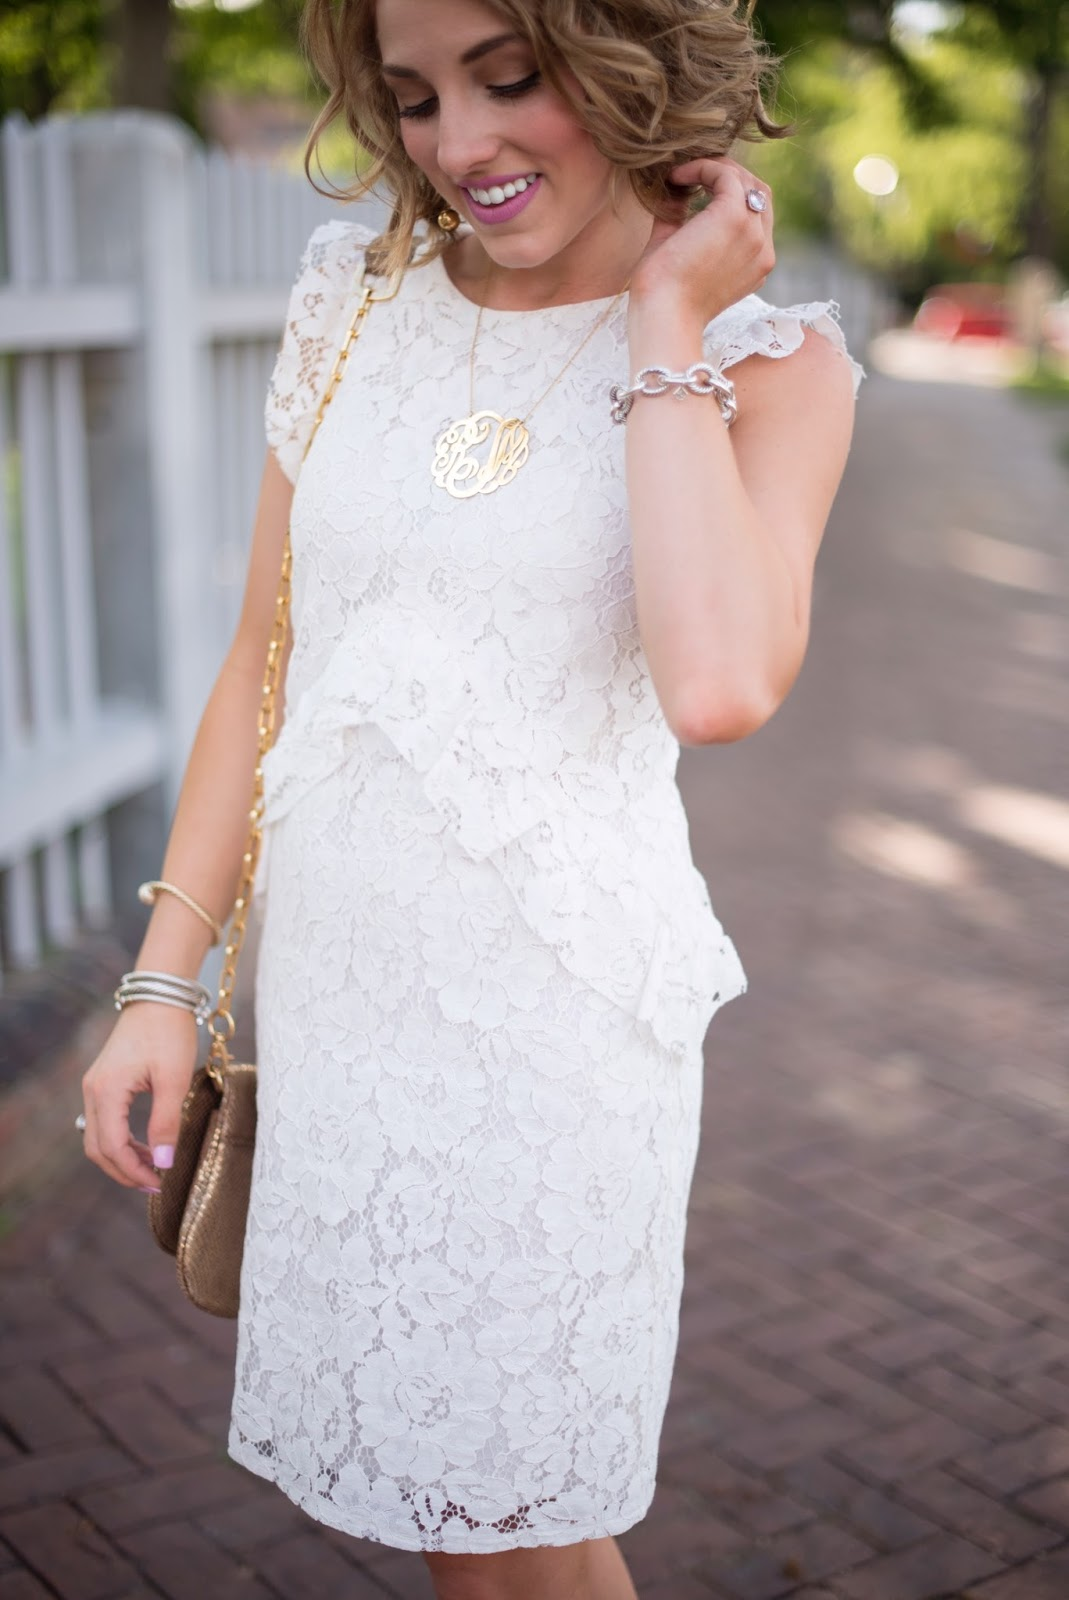 Bridal Shower Outfit Ideas - Click through to see more on Something Delightful Blog.